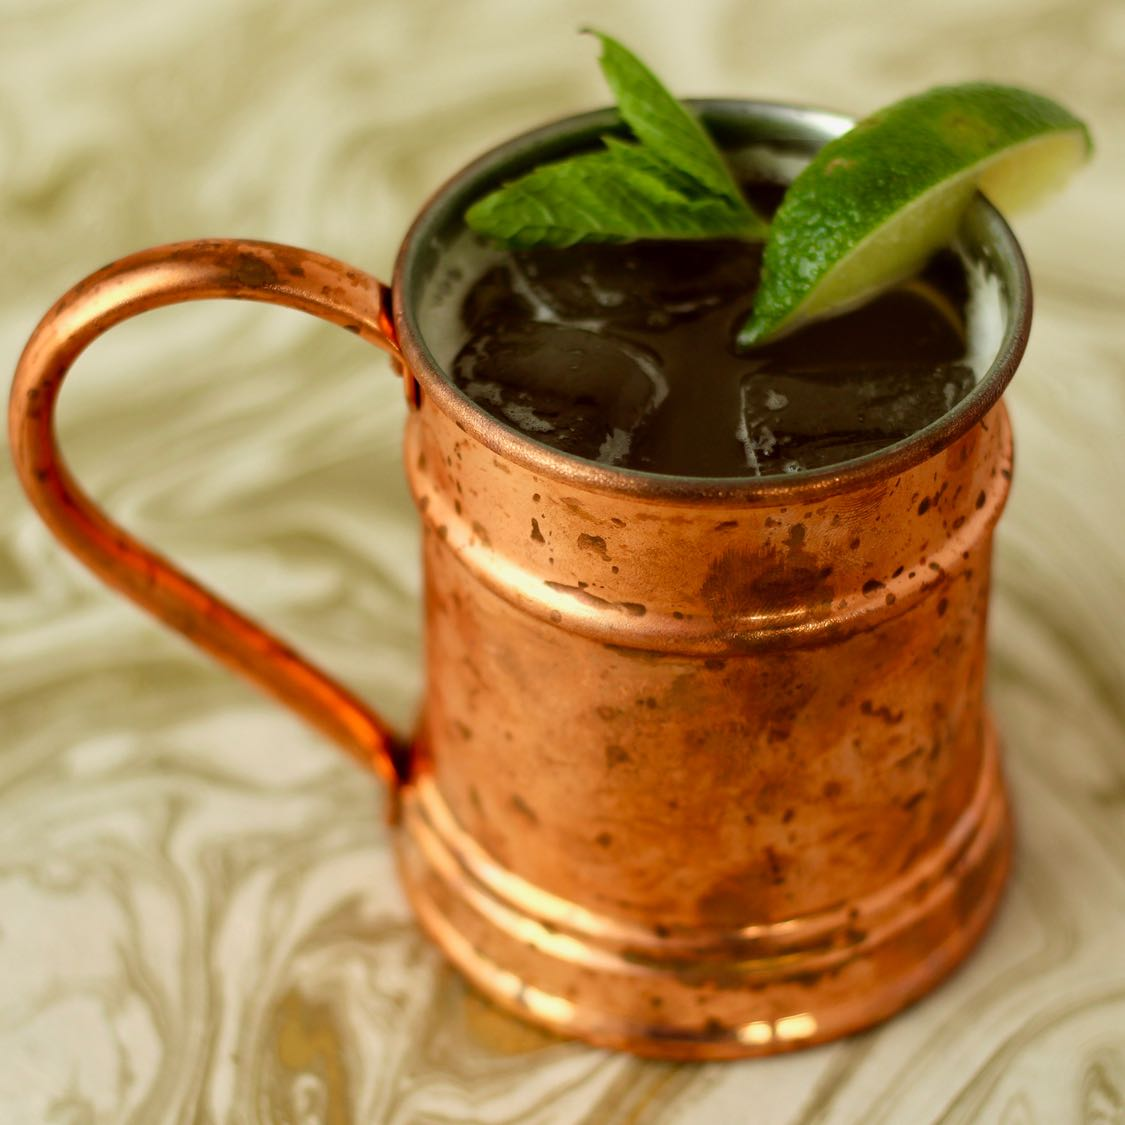 Moscow Mule Cocktail - Classic 1941 Cock'n Bull Recipe